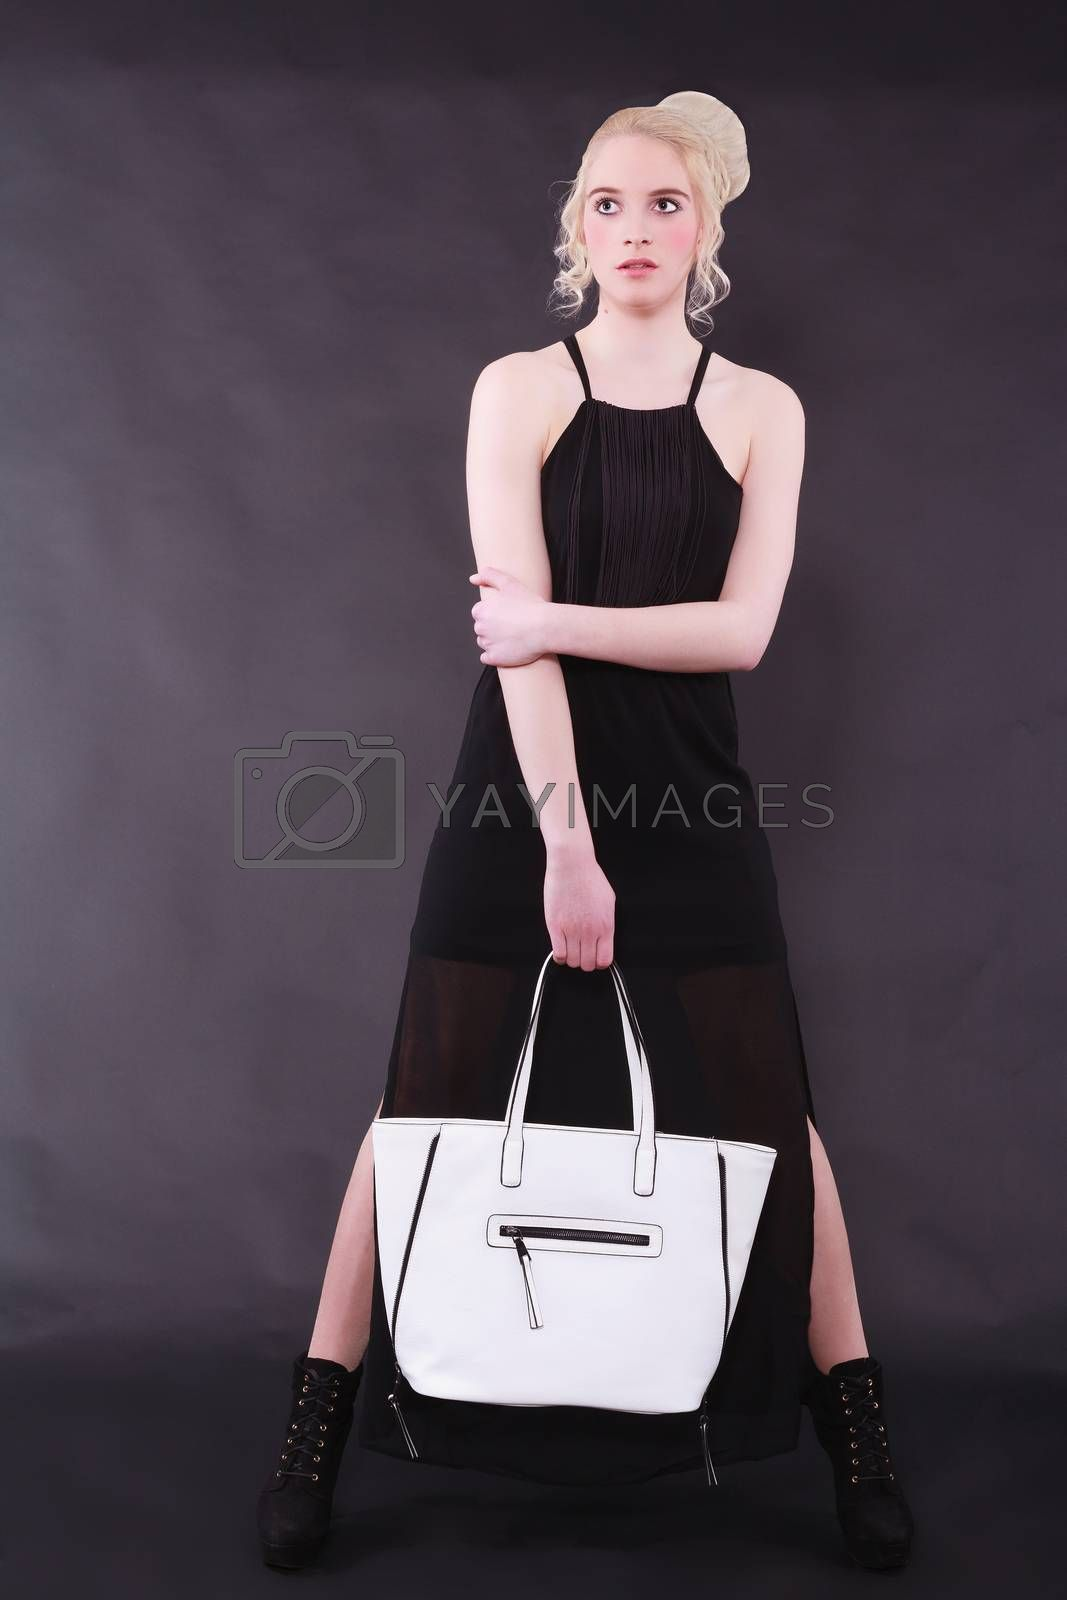 Blonde young model with modern hairstyle stands legs in black dress against a black background and holding a white bag in his hand.